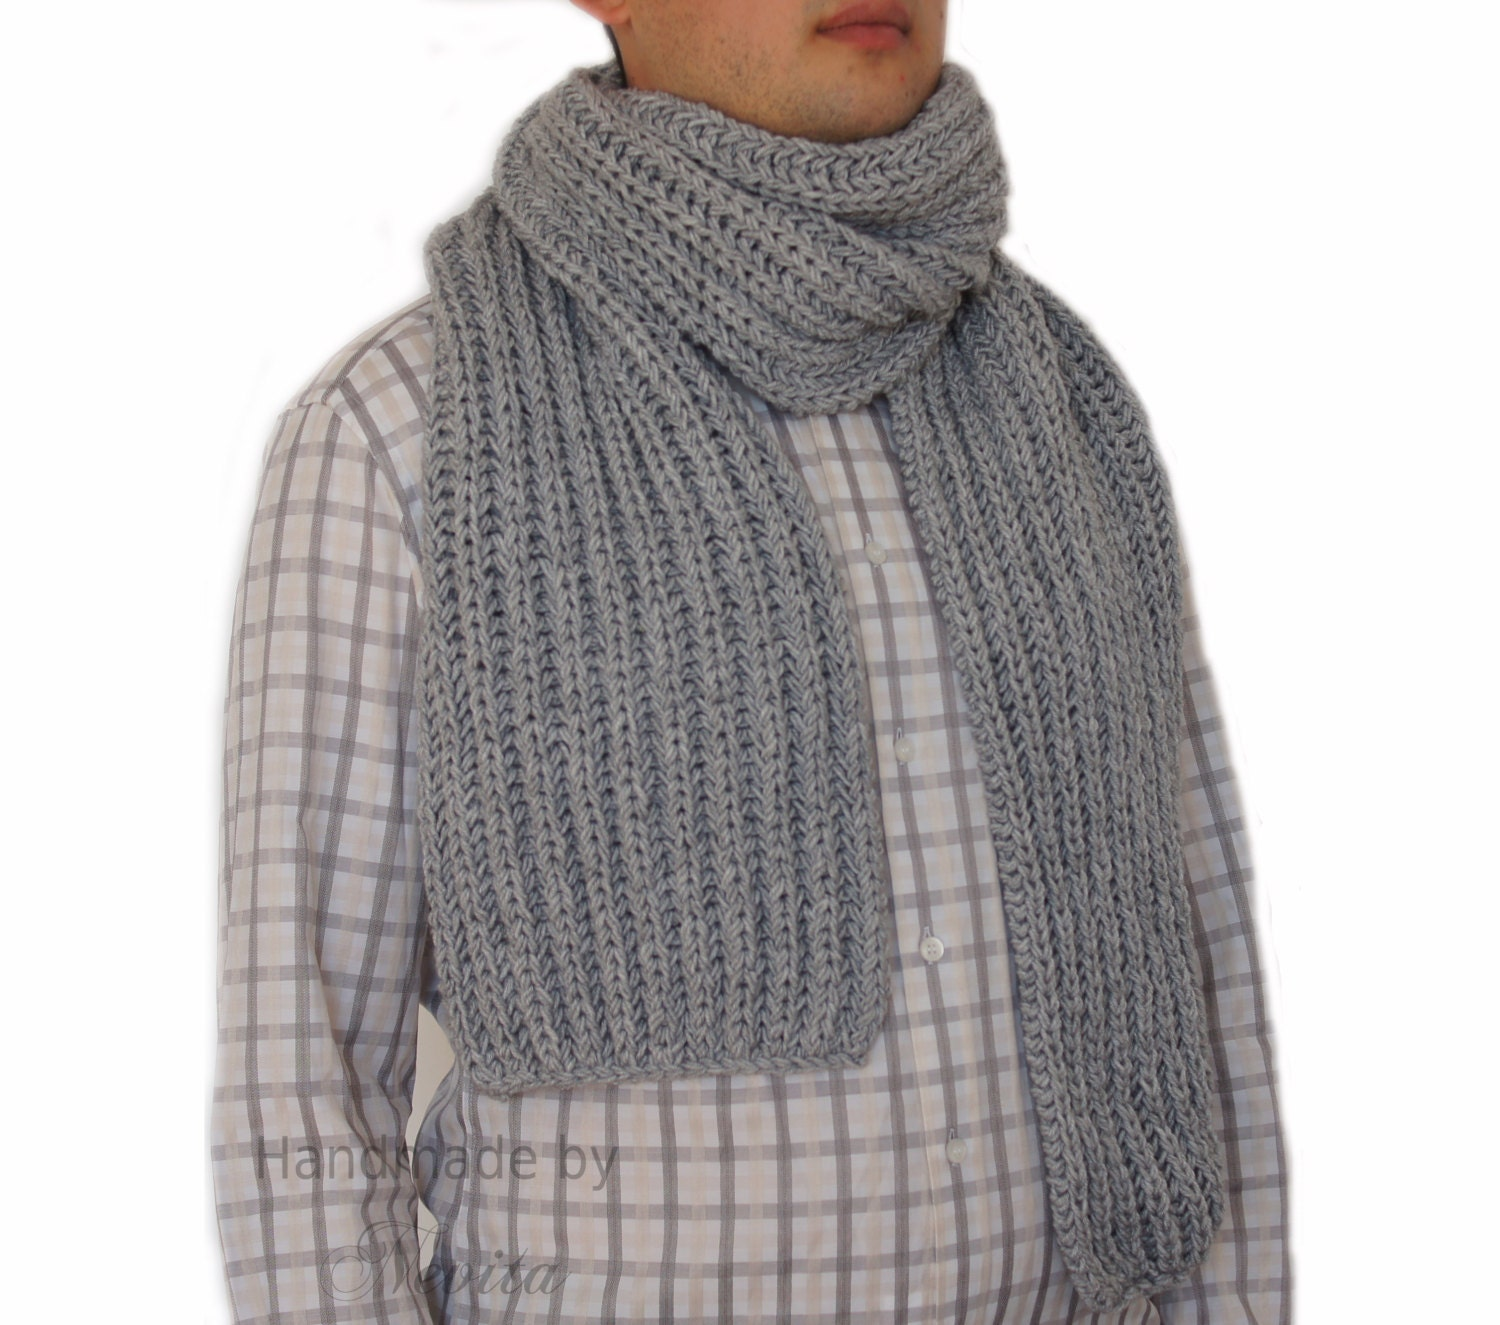 Old Fashioned Mens Knitted Scarf Patterns Picture Collection ...